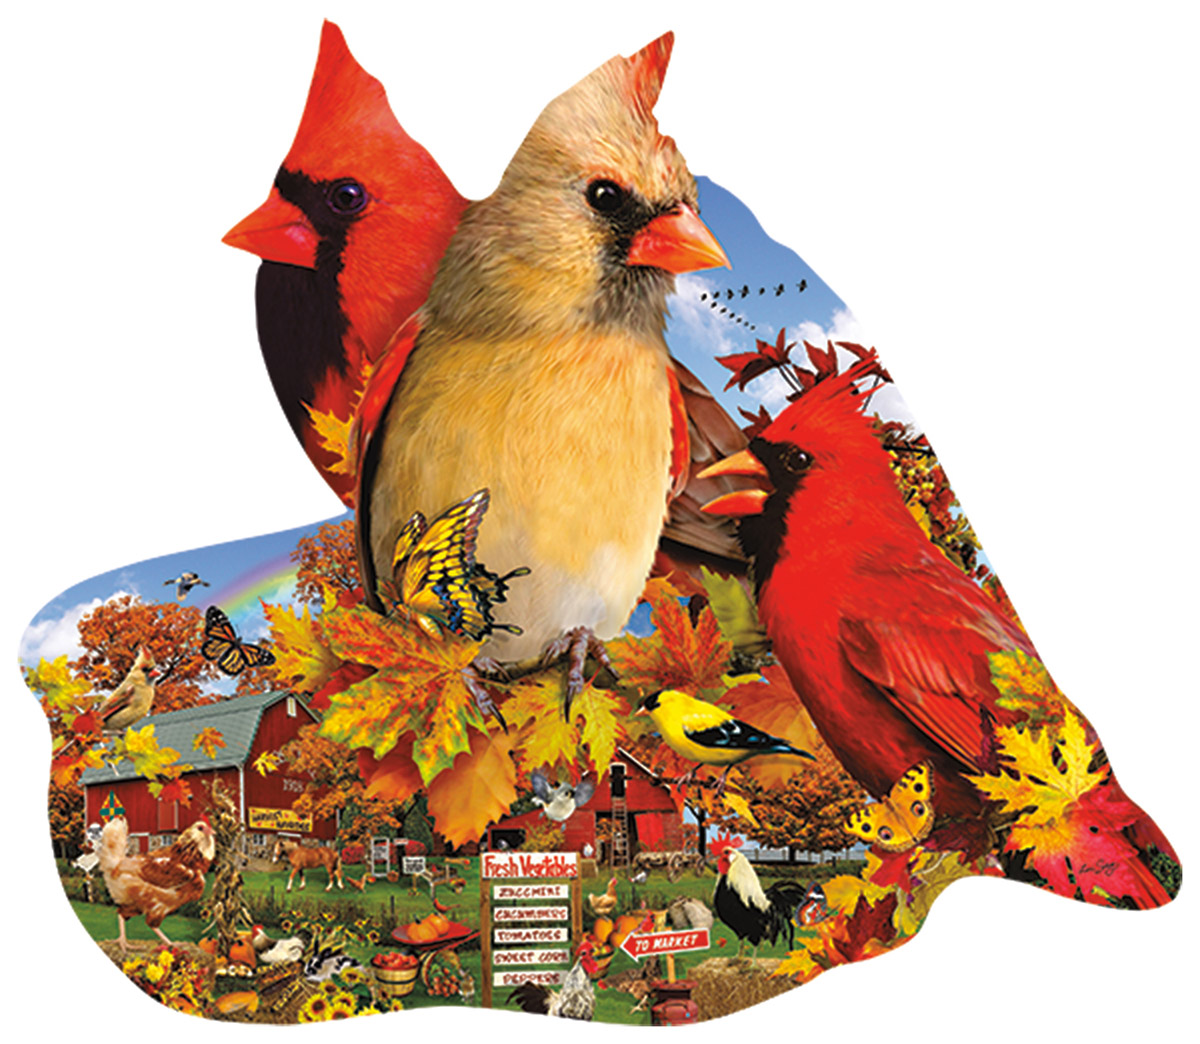 Fall Cardinals Birds Shaped Puzzle